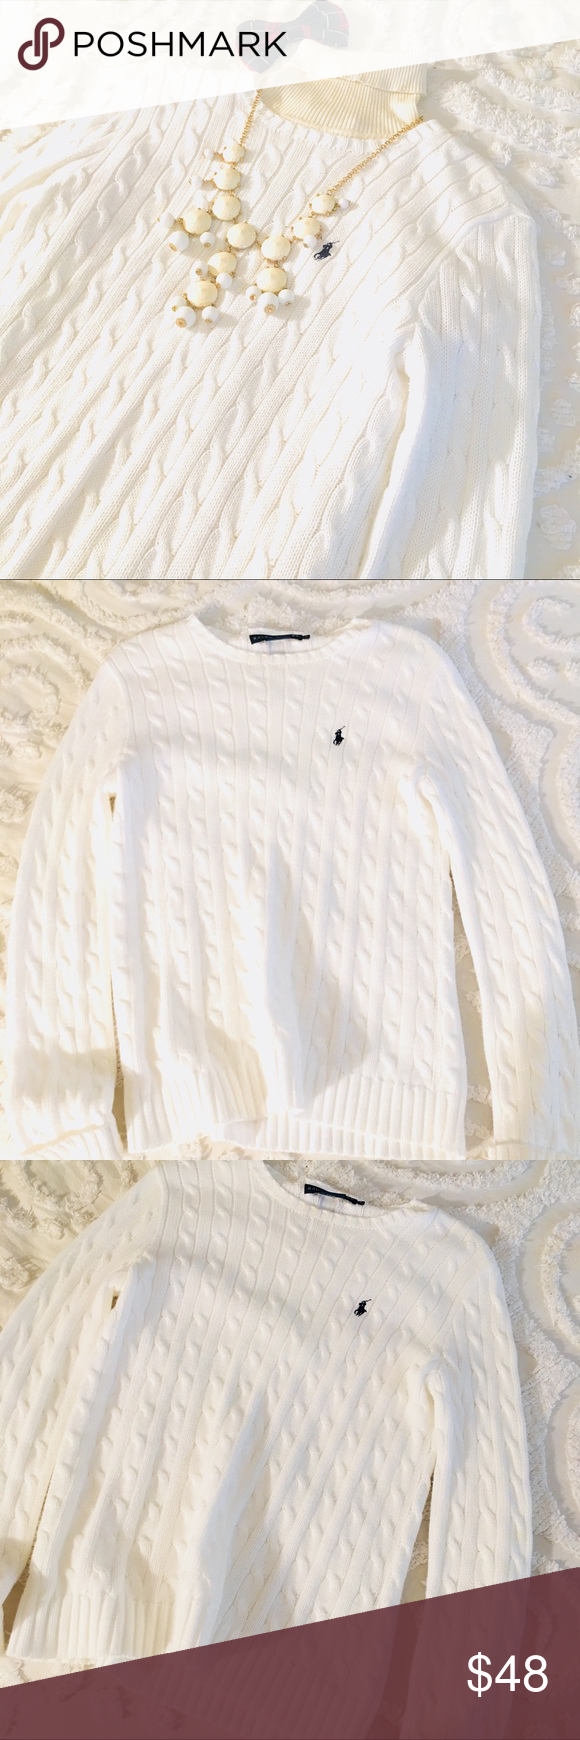 Ralph Lauren Bright White Cable Knit Sweater | Cable knit sweaters ...